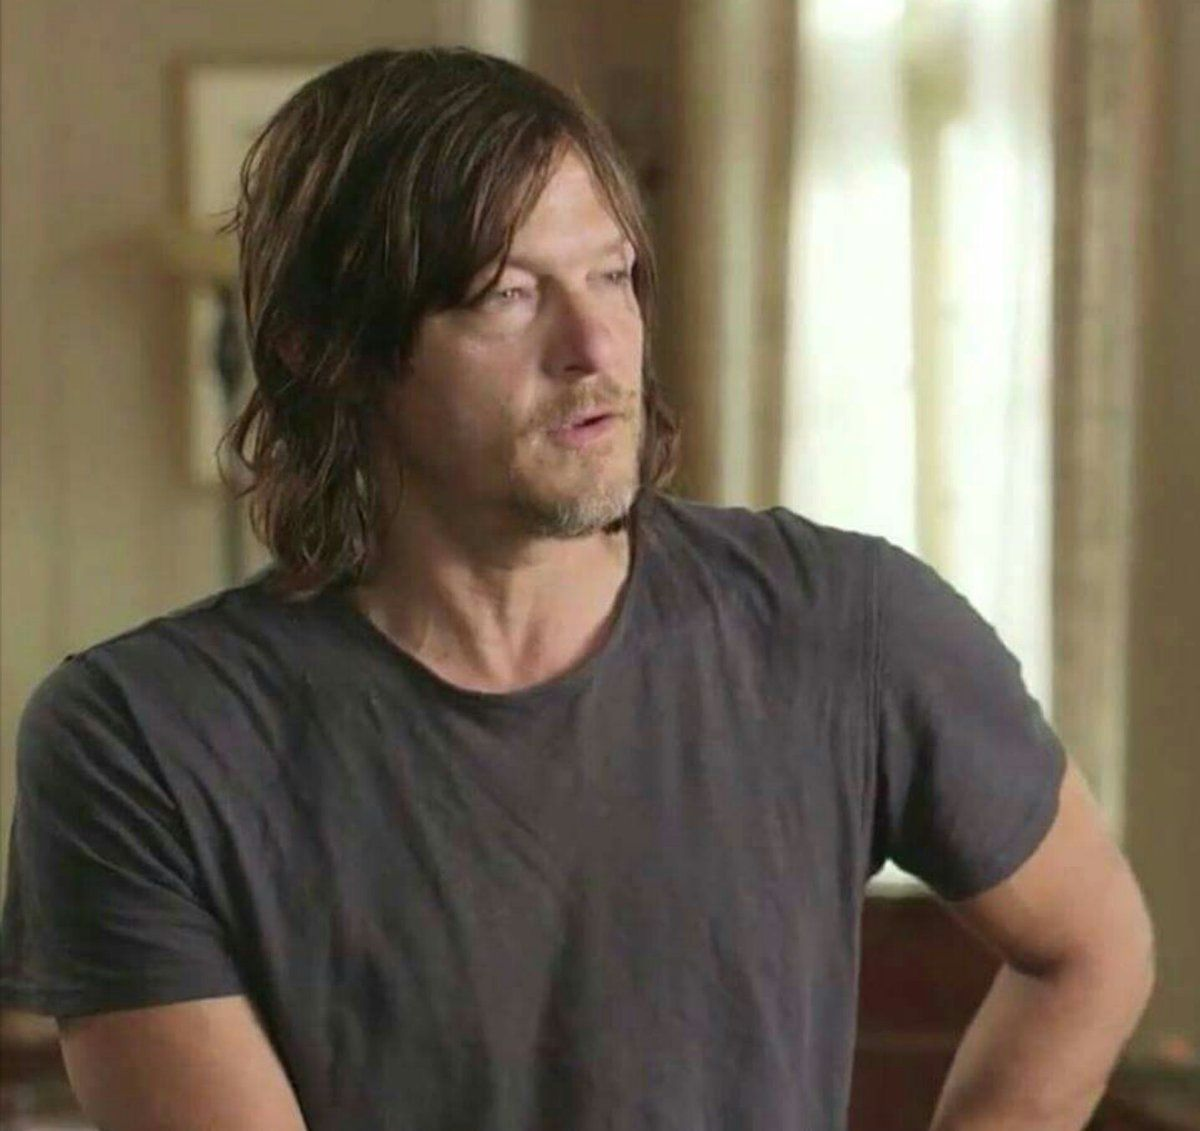 News About Norman Reedus On Twitter Norman Reedus Norman Daryl Dixon Find norman reedus videos, photos, wallpapers, forums, polls. norman reedus norman daryl dixon